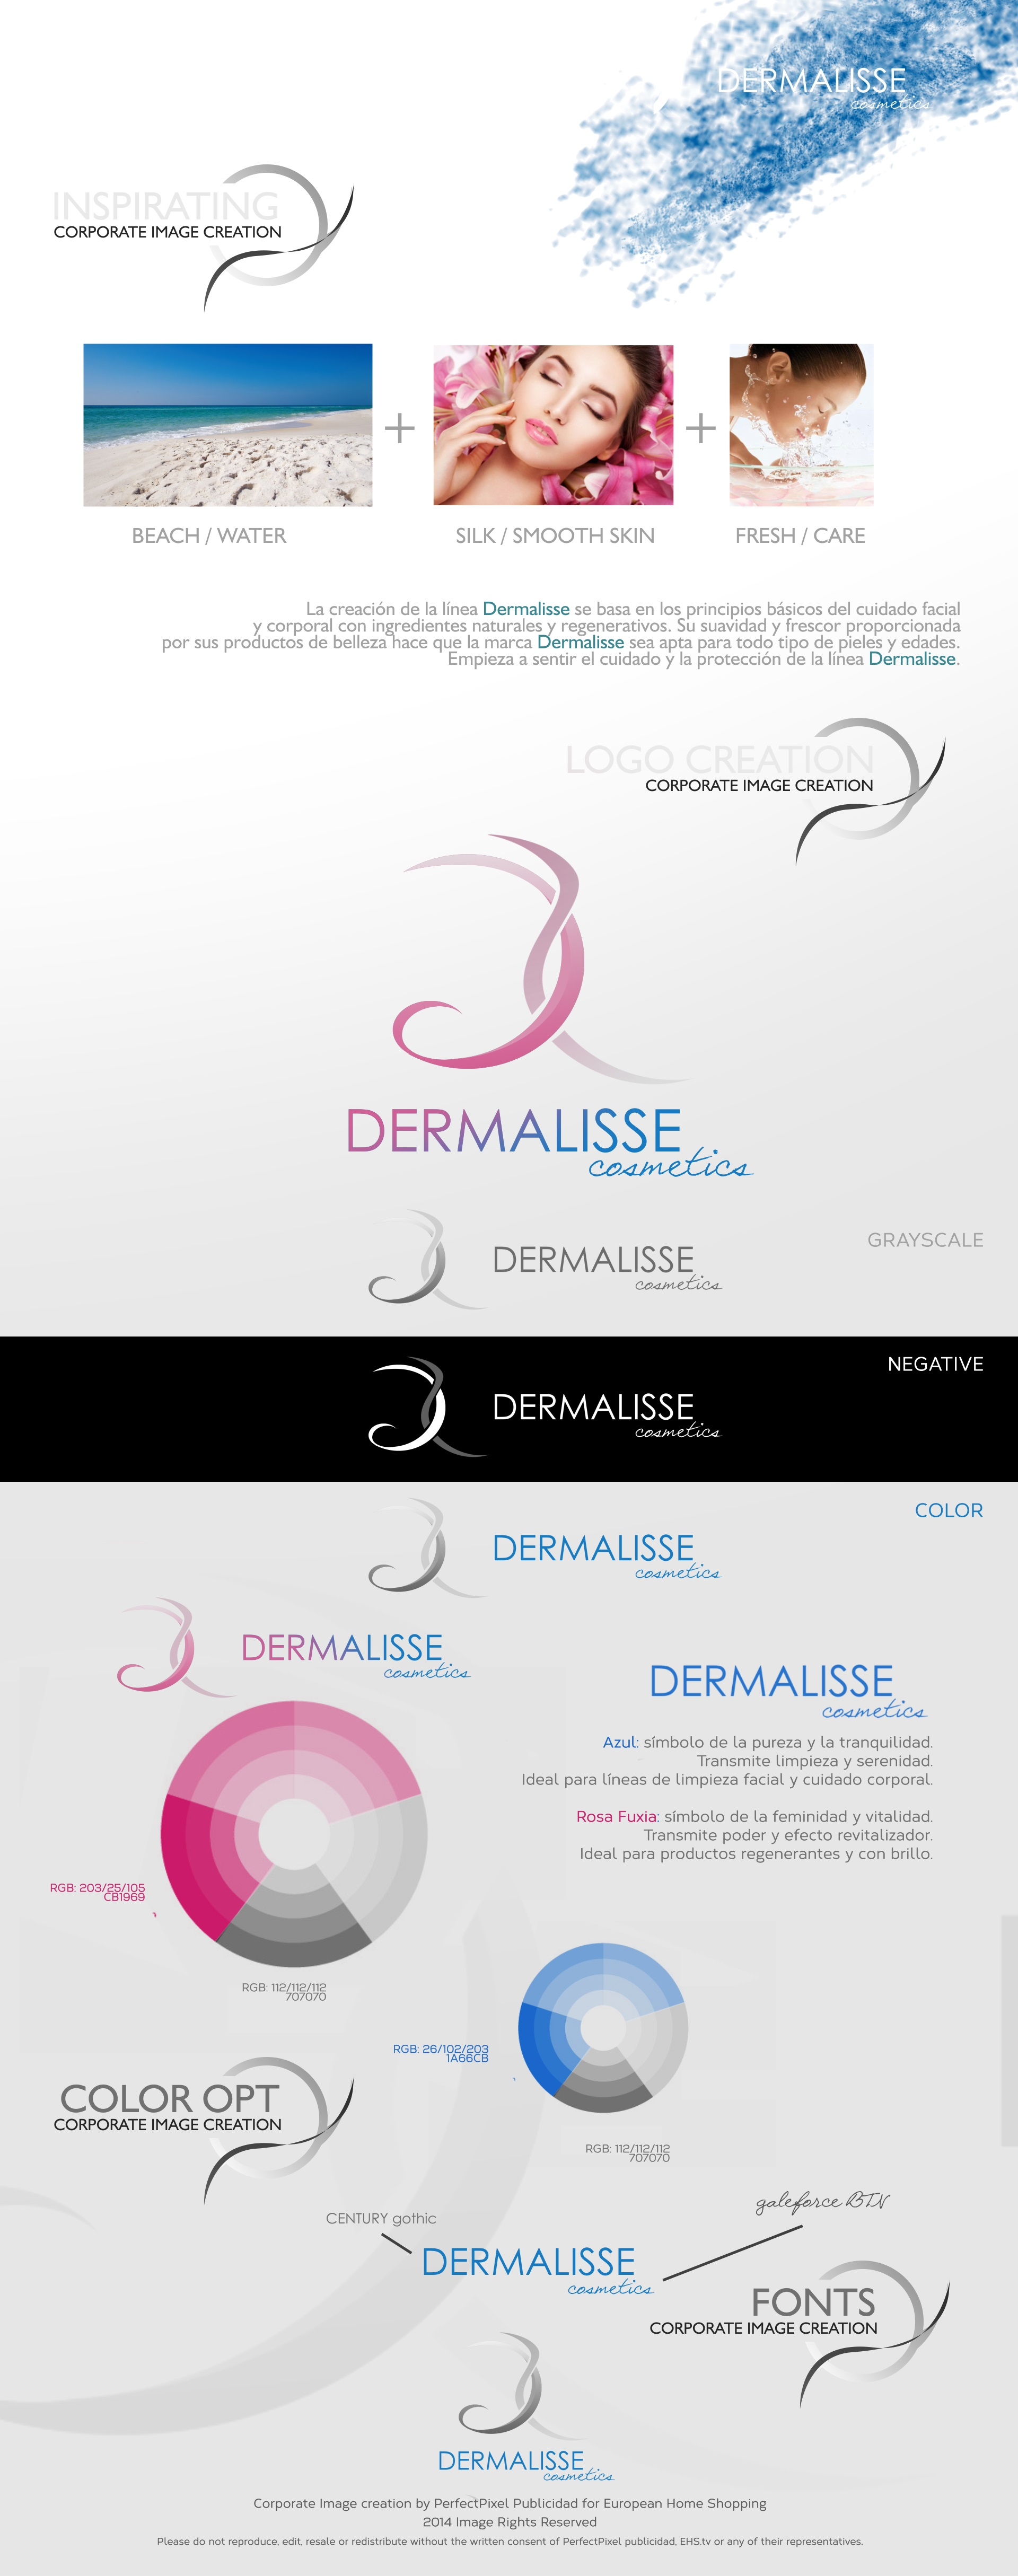 New Corporate Image for Dermalisse Cosmetics